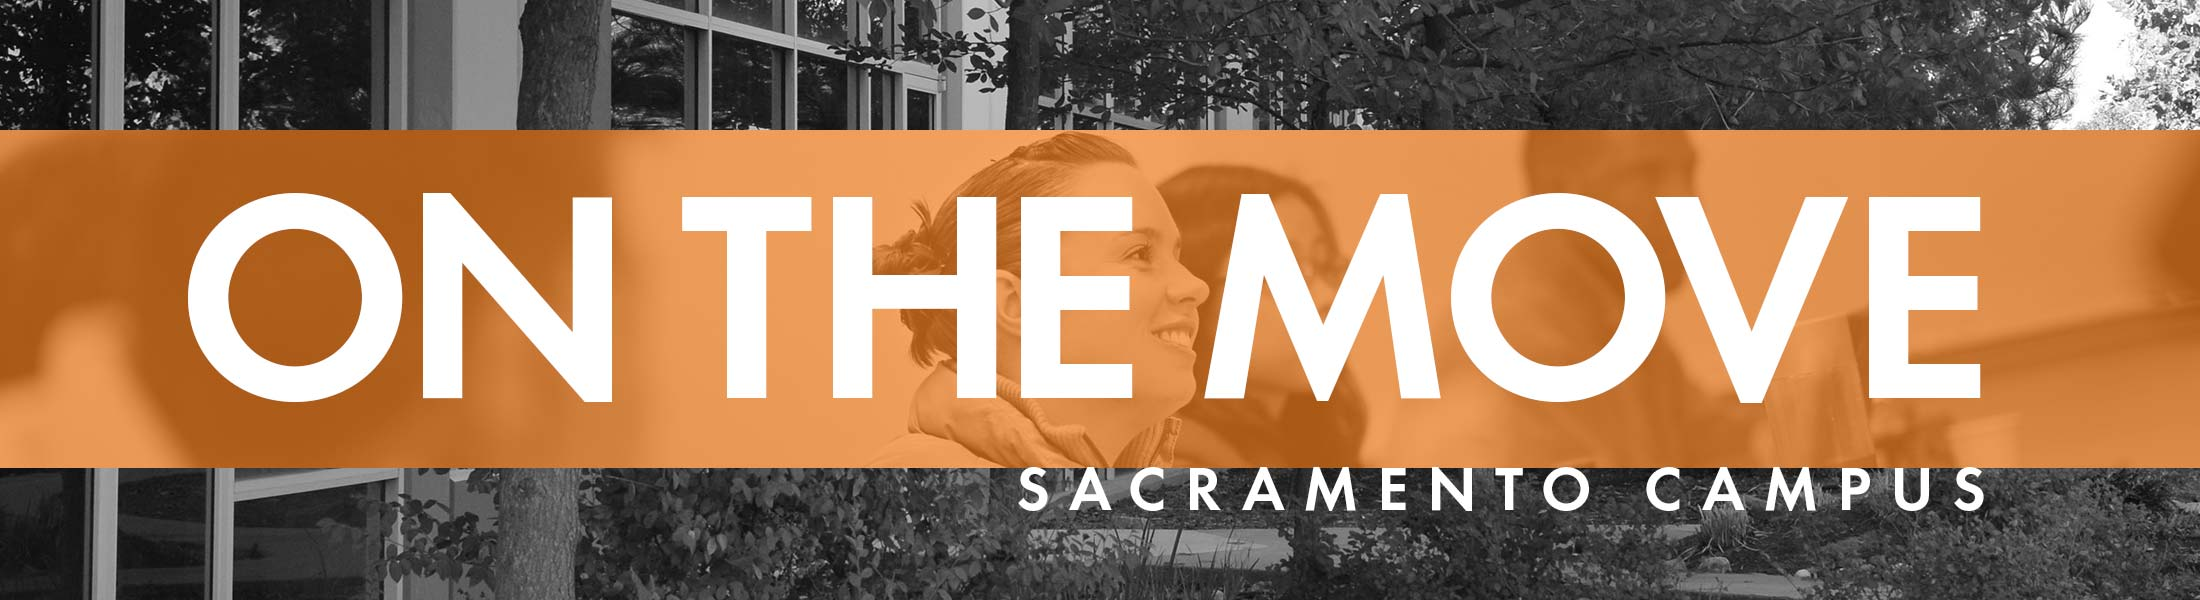 Sacramento-Campus-Relocation-Development